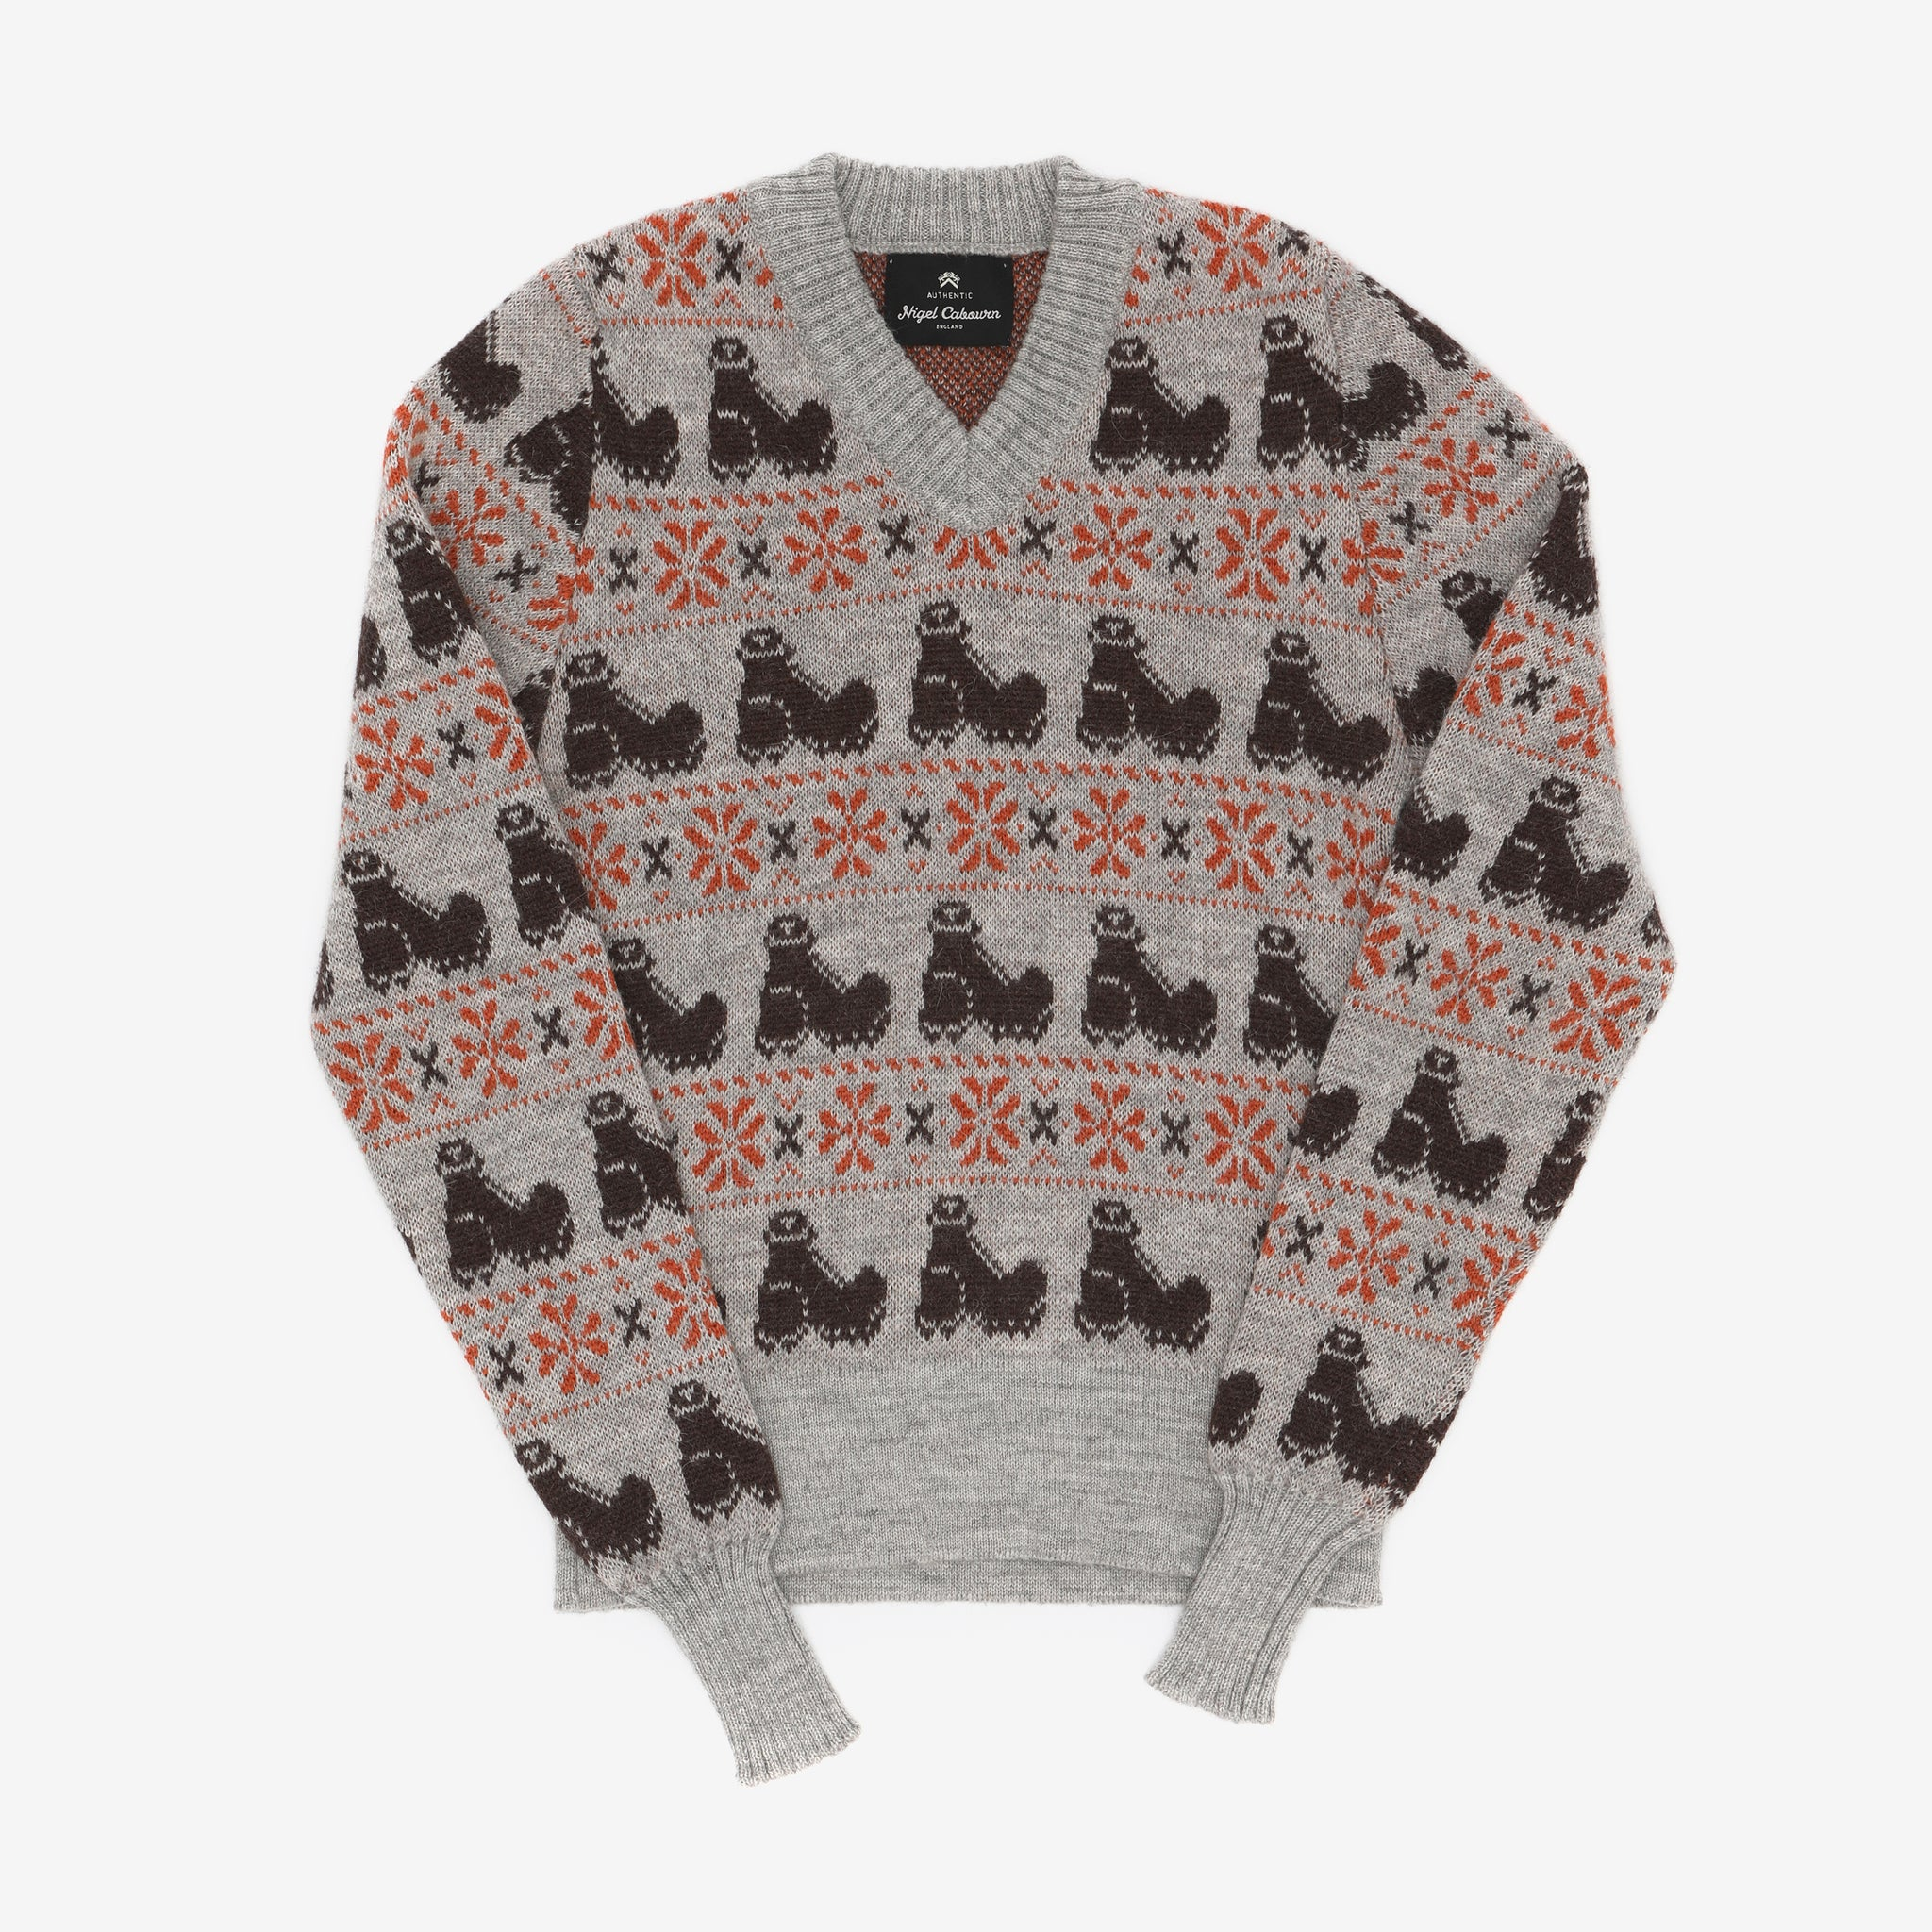 Nigel Cabourn V-Neck Printed Sweater